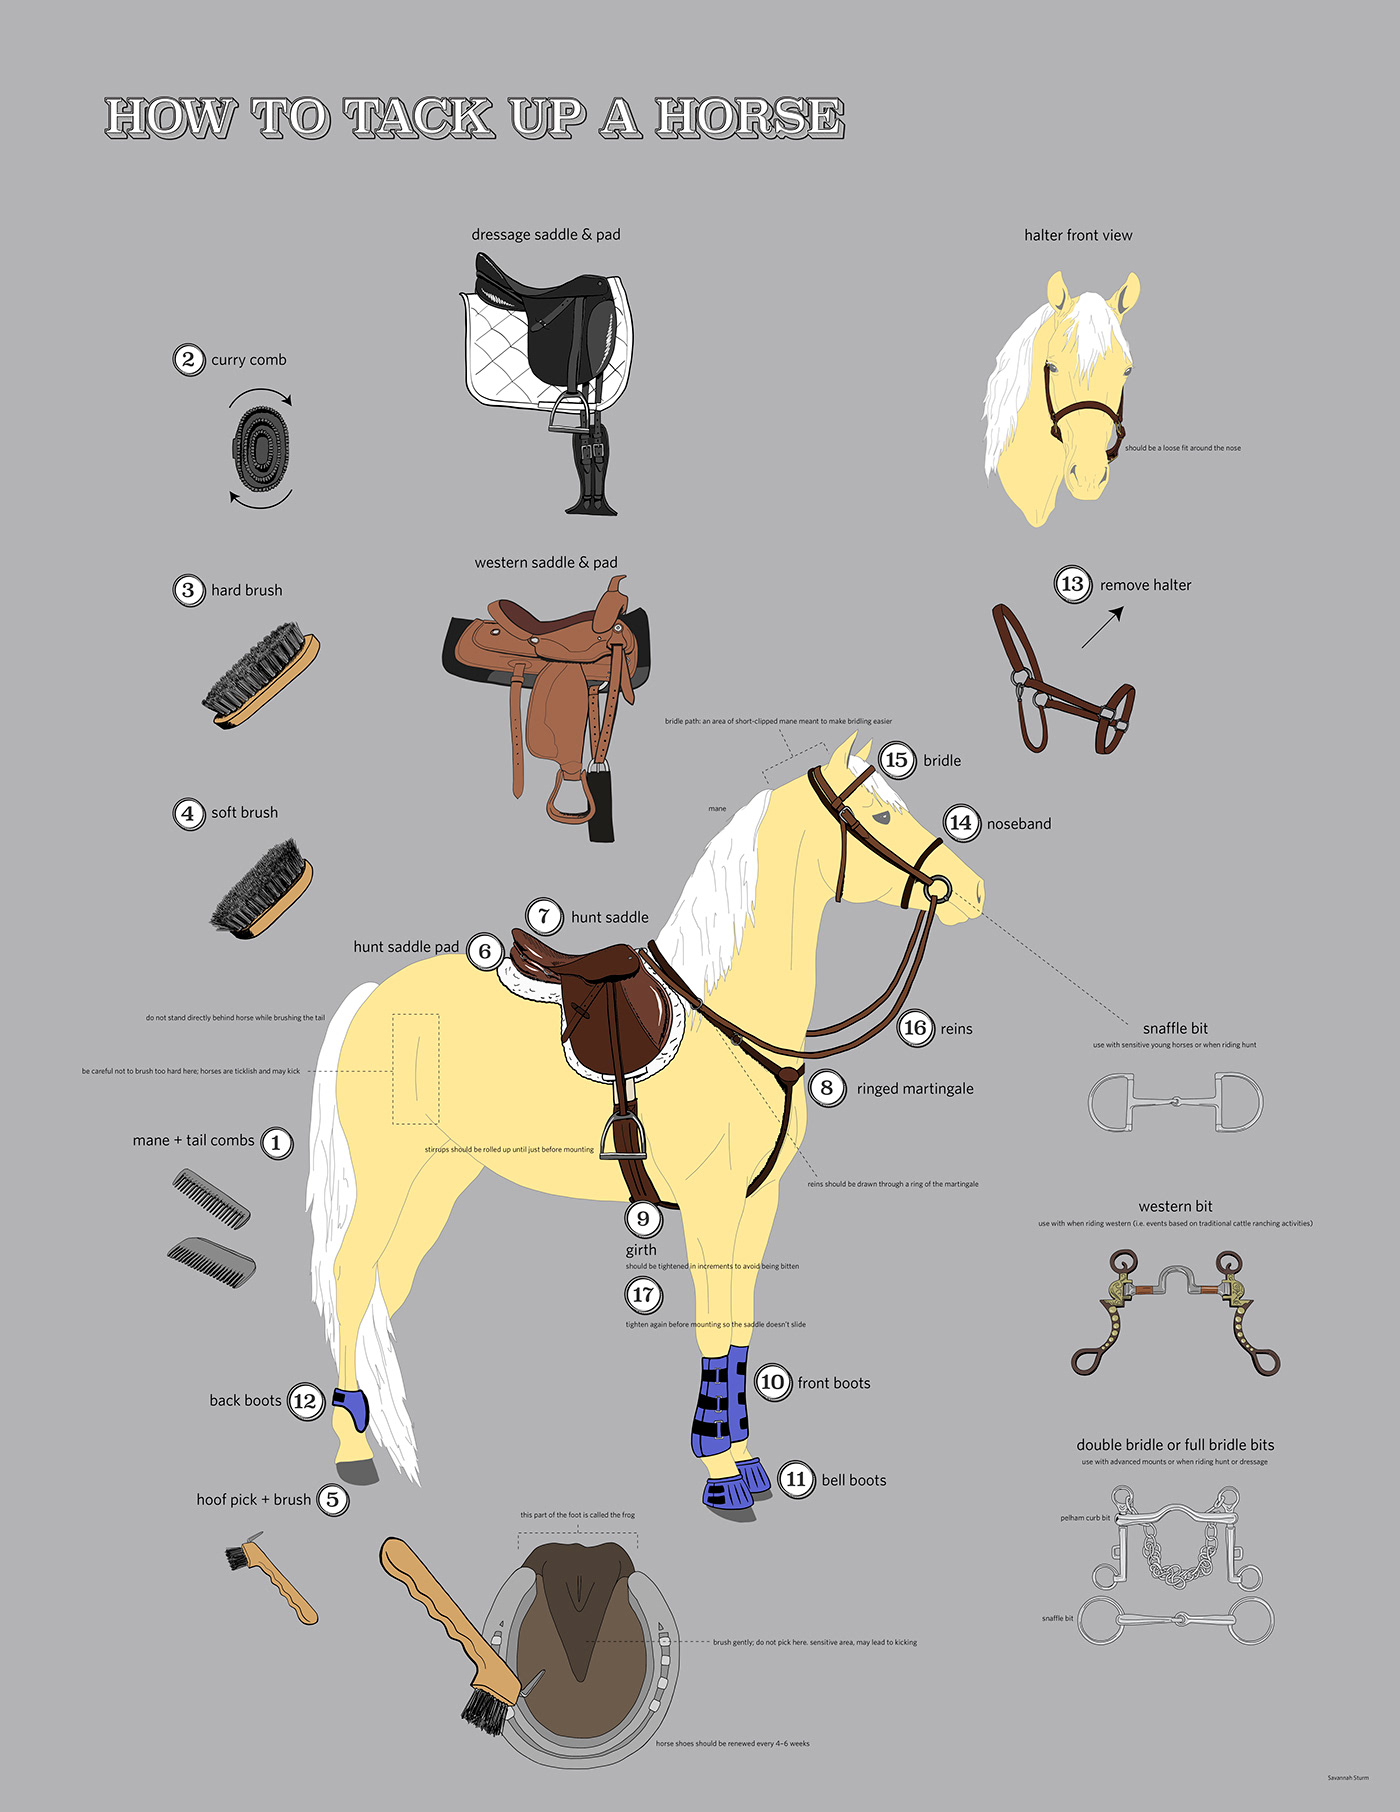 hight resolution of  or prepare a horse and equipment for riding i chose to put an emphasis on illustration for this project so each item on the diagram is a hand drawn